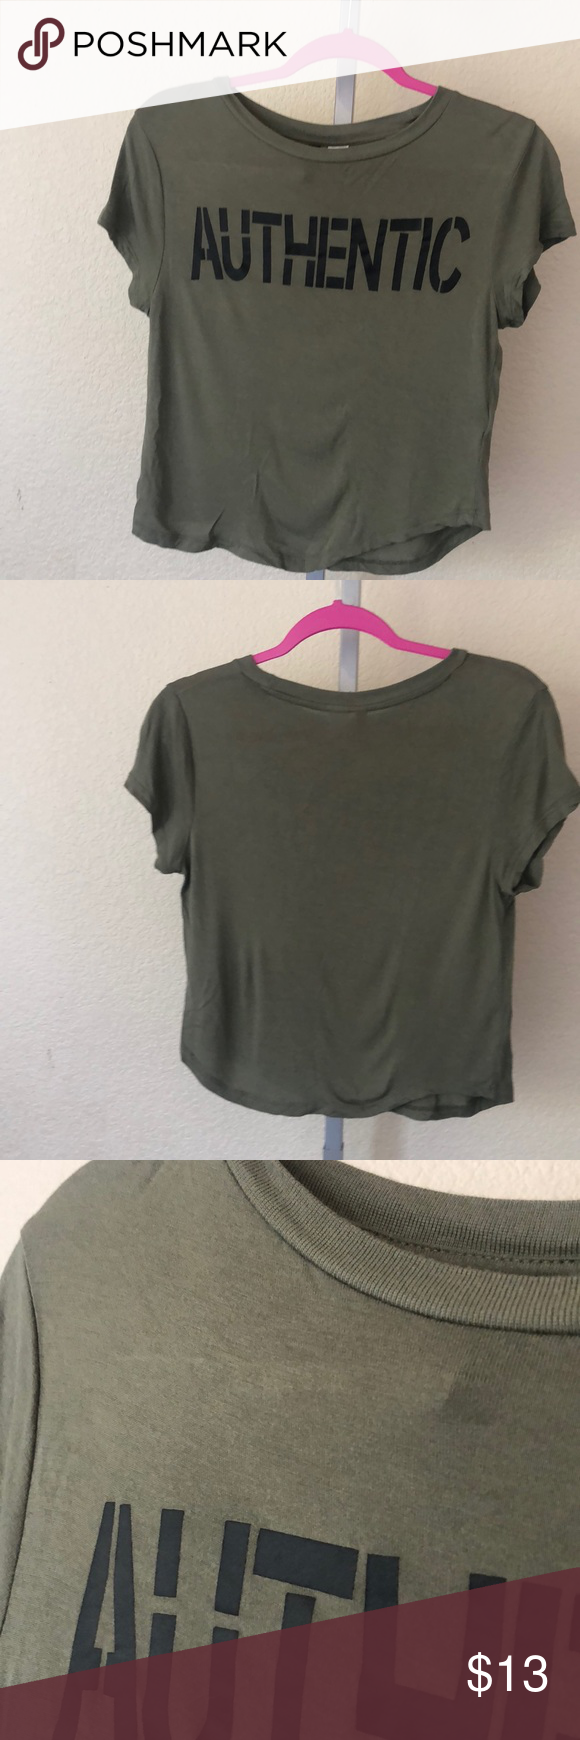 "a5c807295e8292 Divided By H M Crop T-Shirt Army green ""authentic "" H M CropTop  👇🏻👇🏻👇🏻👇🏻👇🏻👇🏻 Measurements Length  16"" Bust 30"